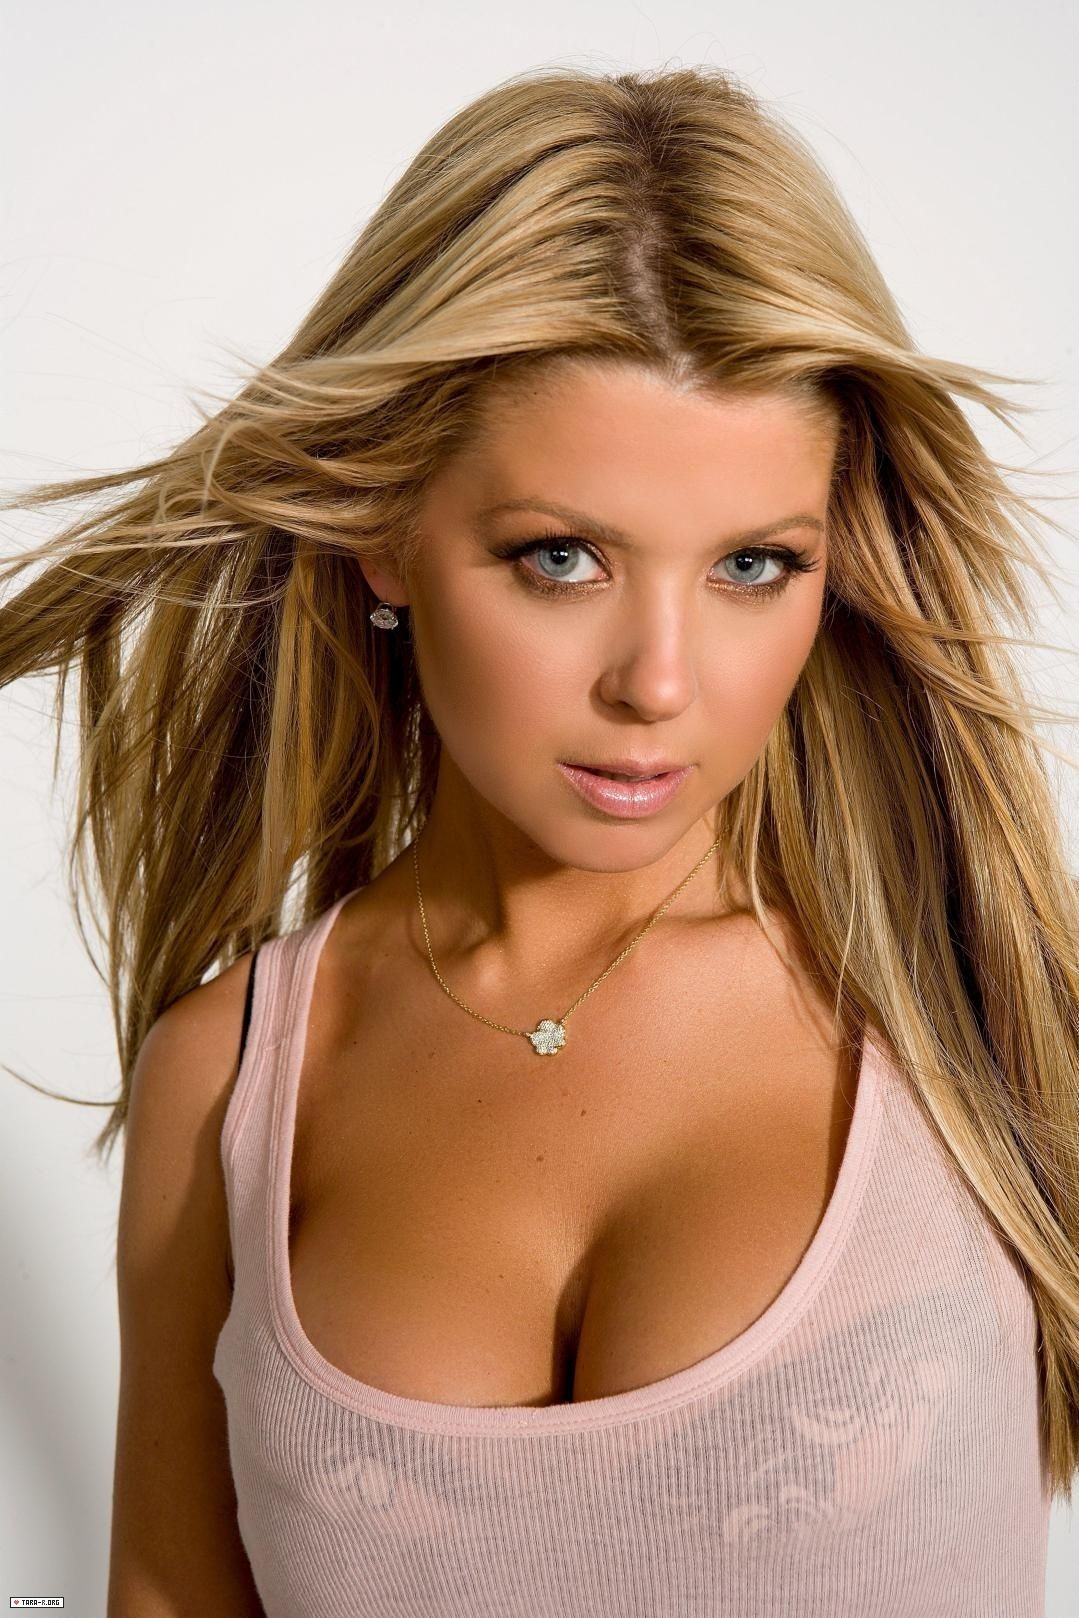 Tara Reid with visible bra cups and straps #vpl | actresses ...